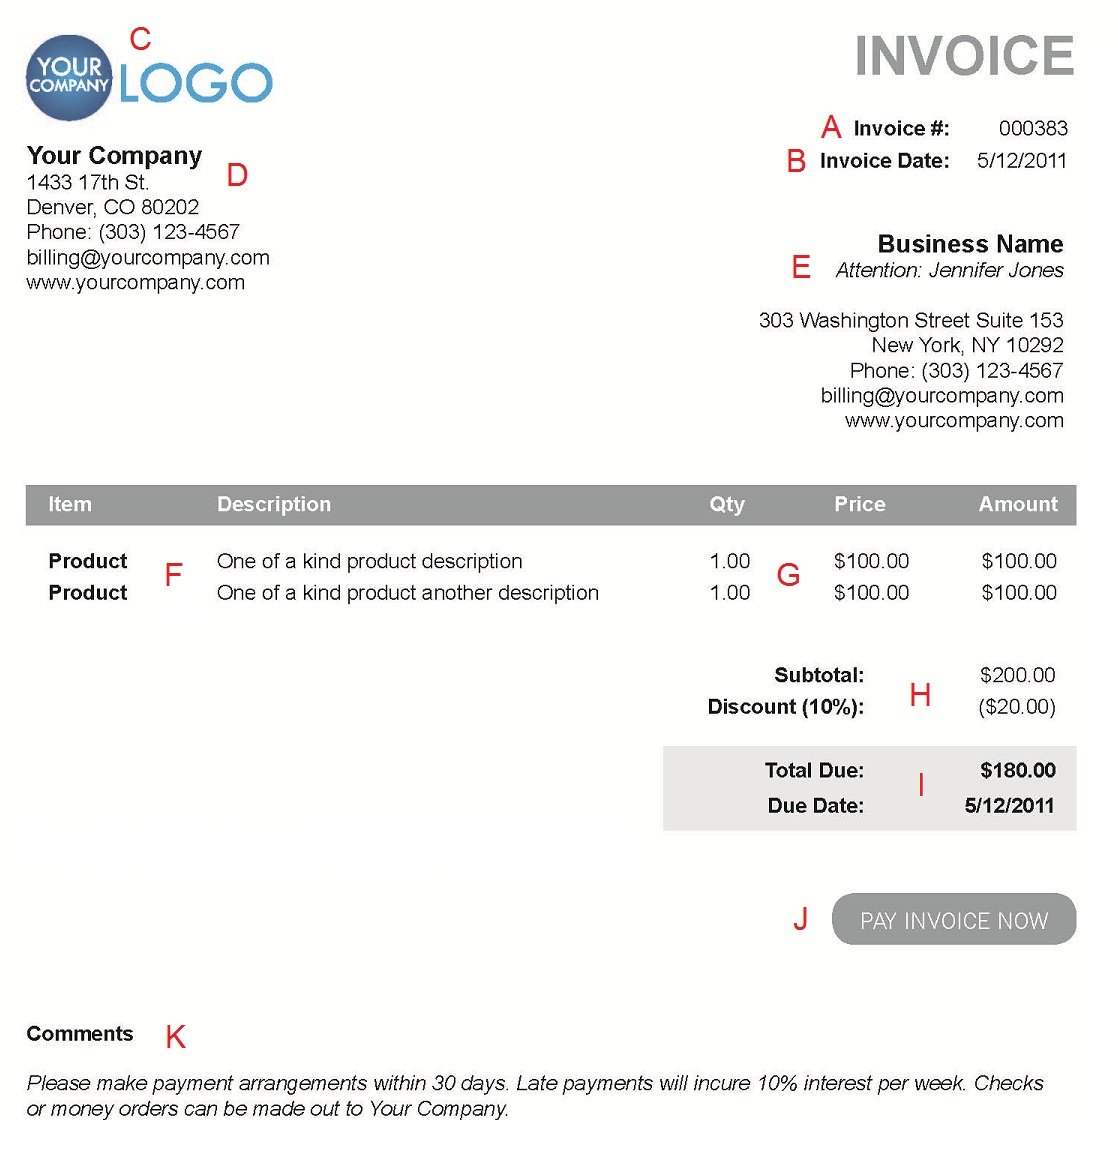 Atvingus  Sweet The  Different Sections Of An Electronic Payment Invoice With Likable A  With Nice Invoice Definition Business Also How Do You Create An Invoice In Addition Design Invoices And Invoice Template Design As Well As Free Invoice Templates Excel Additionally Pending Invoices From Paysimplecom With Atvingus  Likable The  Different Sections Of An Electronic Payment Invoice With Nice A  And Sweet Invoice Definition Business Also How Do You Create An Invoice In Addition Design Invoices From Paysimplecom